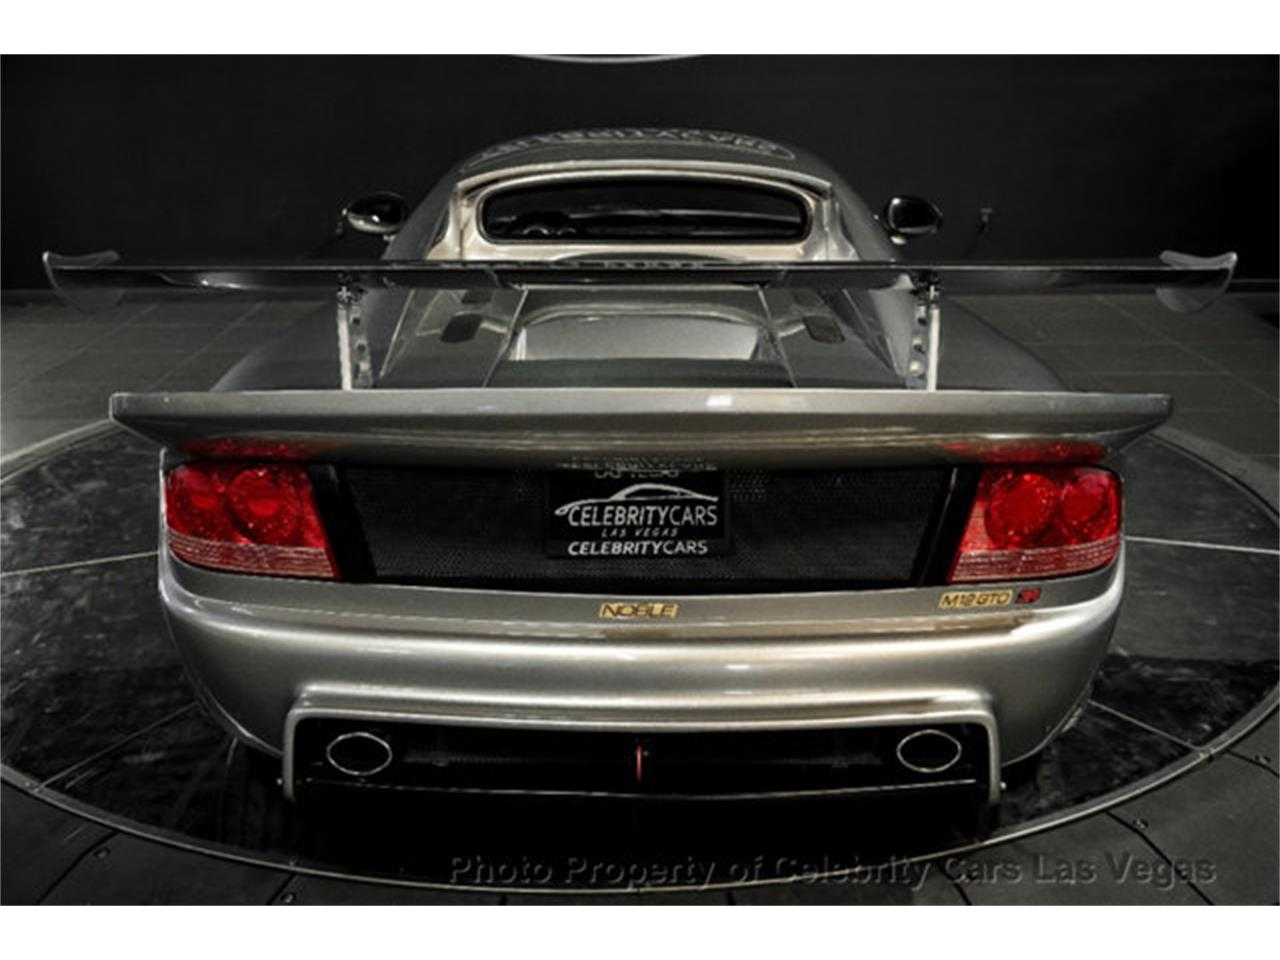 Large Picture of 2004 Noble M12 GTO-3R located in Nevada - $54,900.00 - OY16